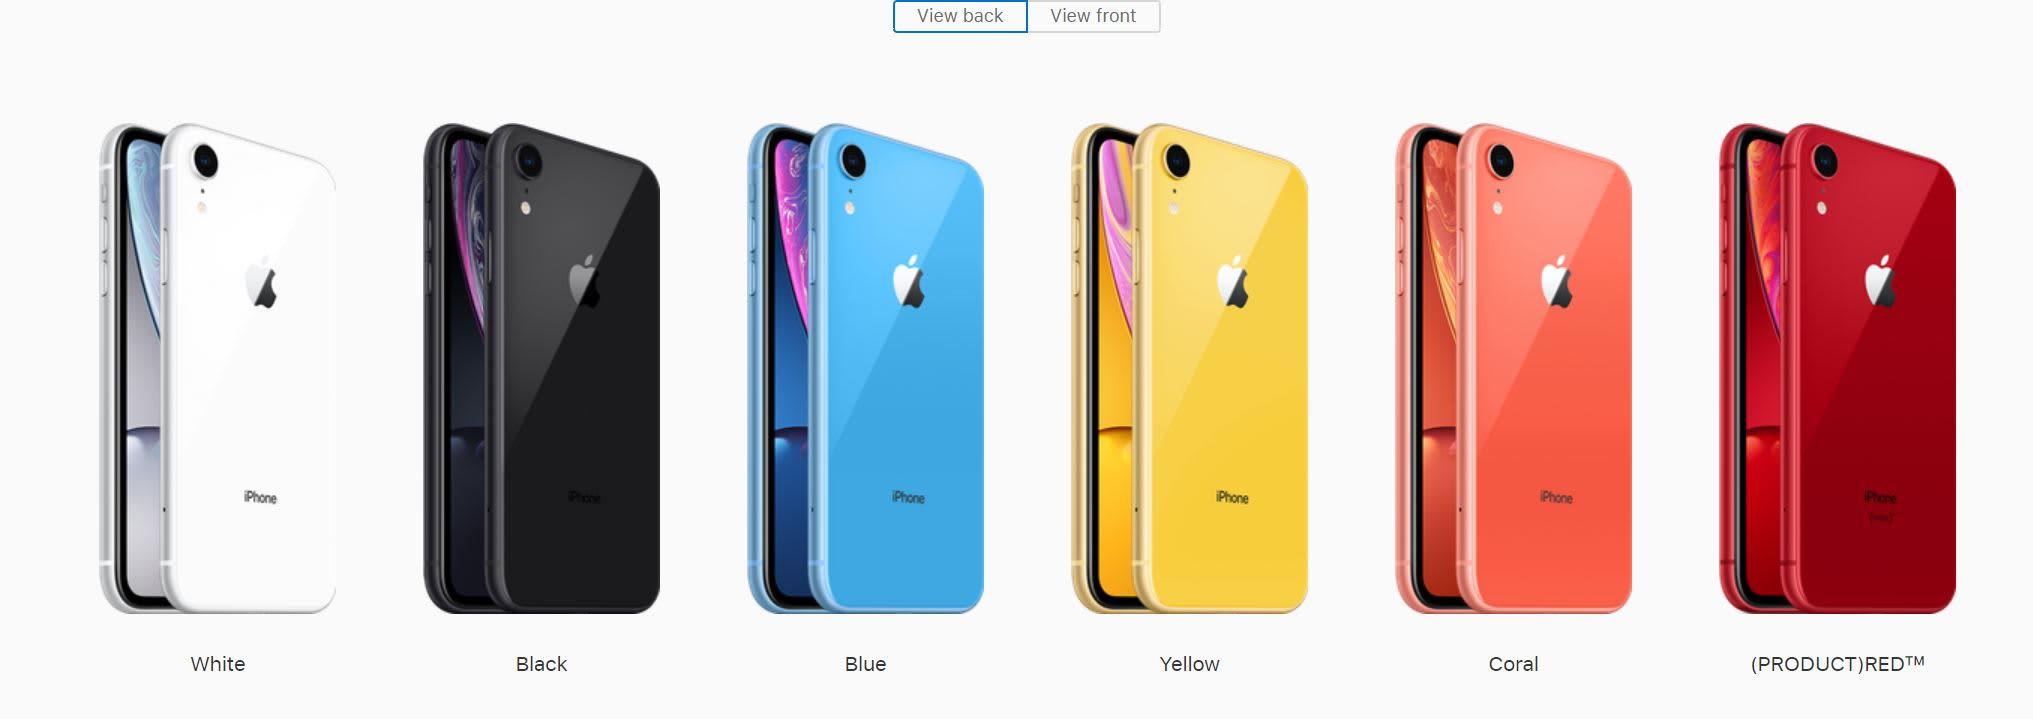 CNBC Tech: iPhone XR range